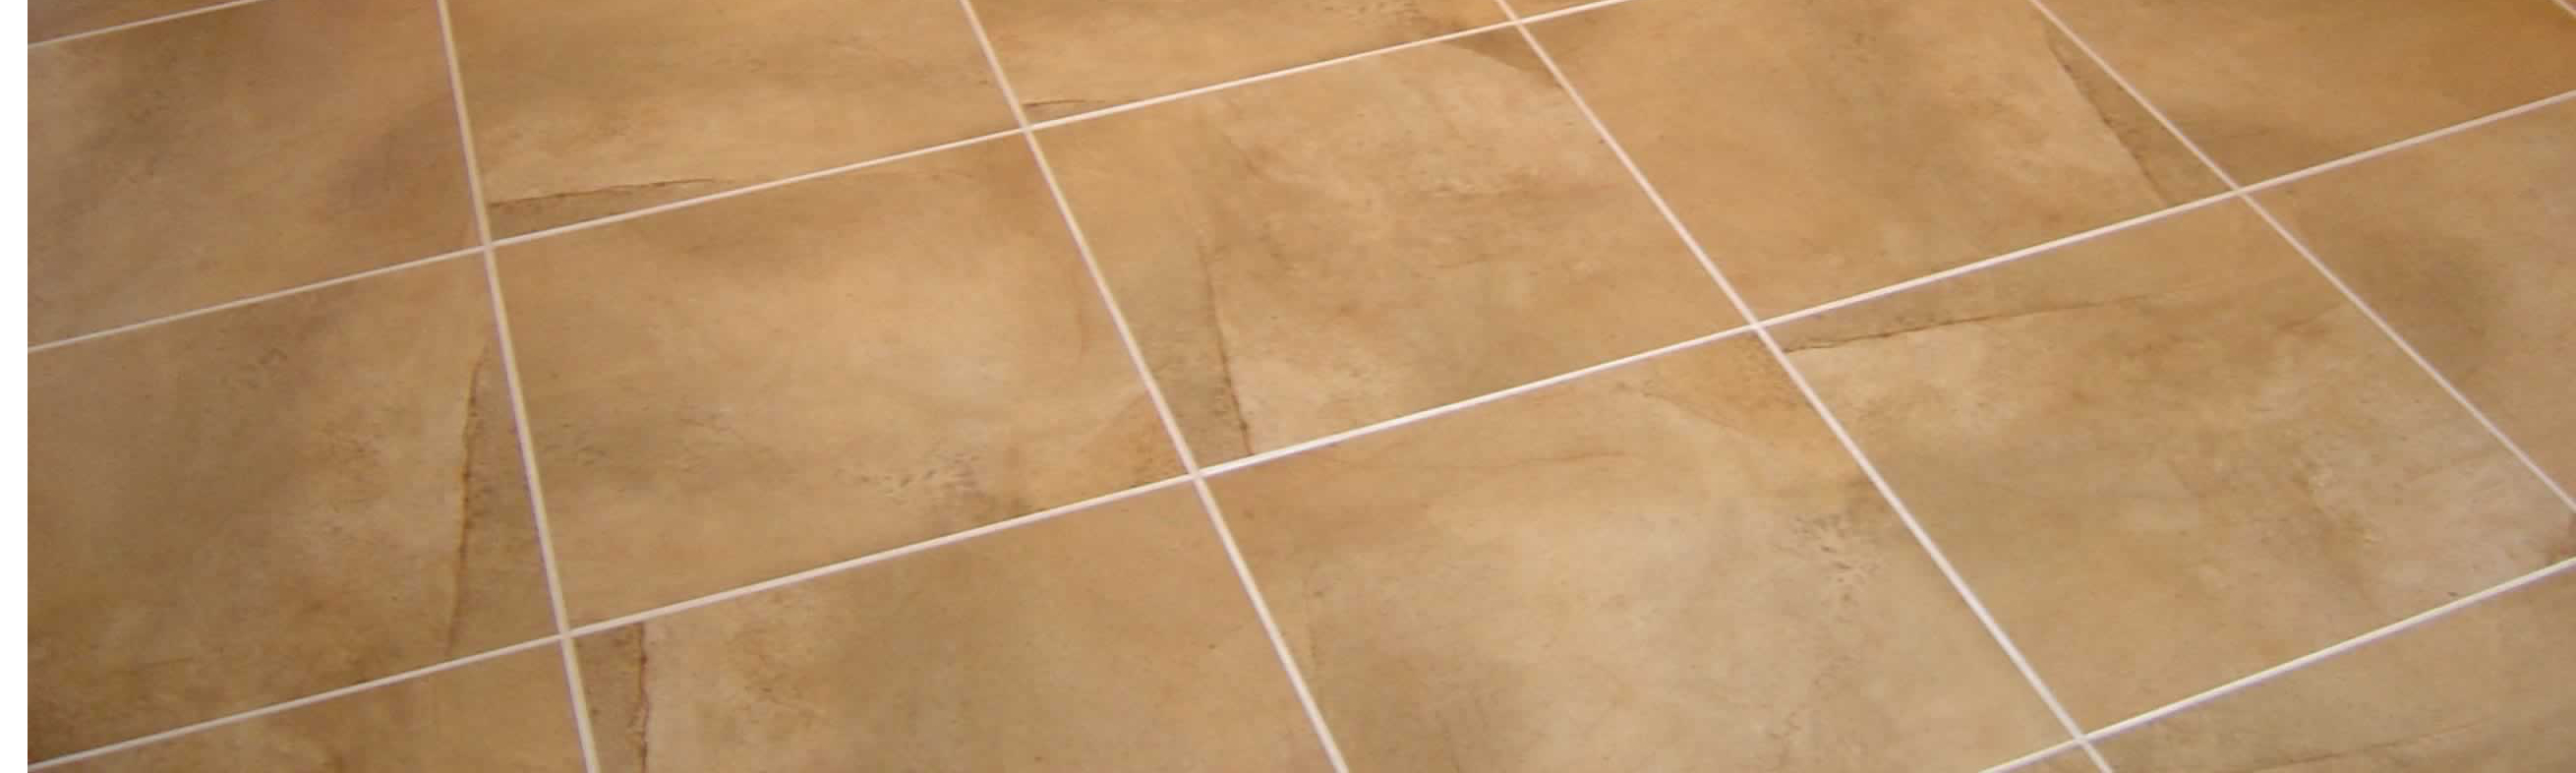 Tile And Grout Cleaning Perth Star Cleaning Solutions Perth